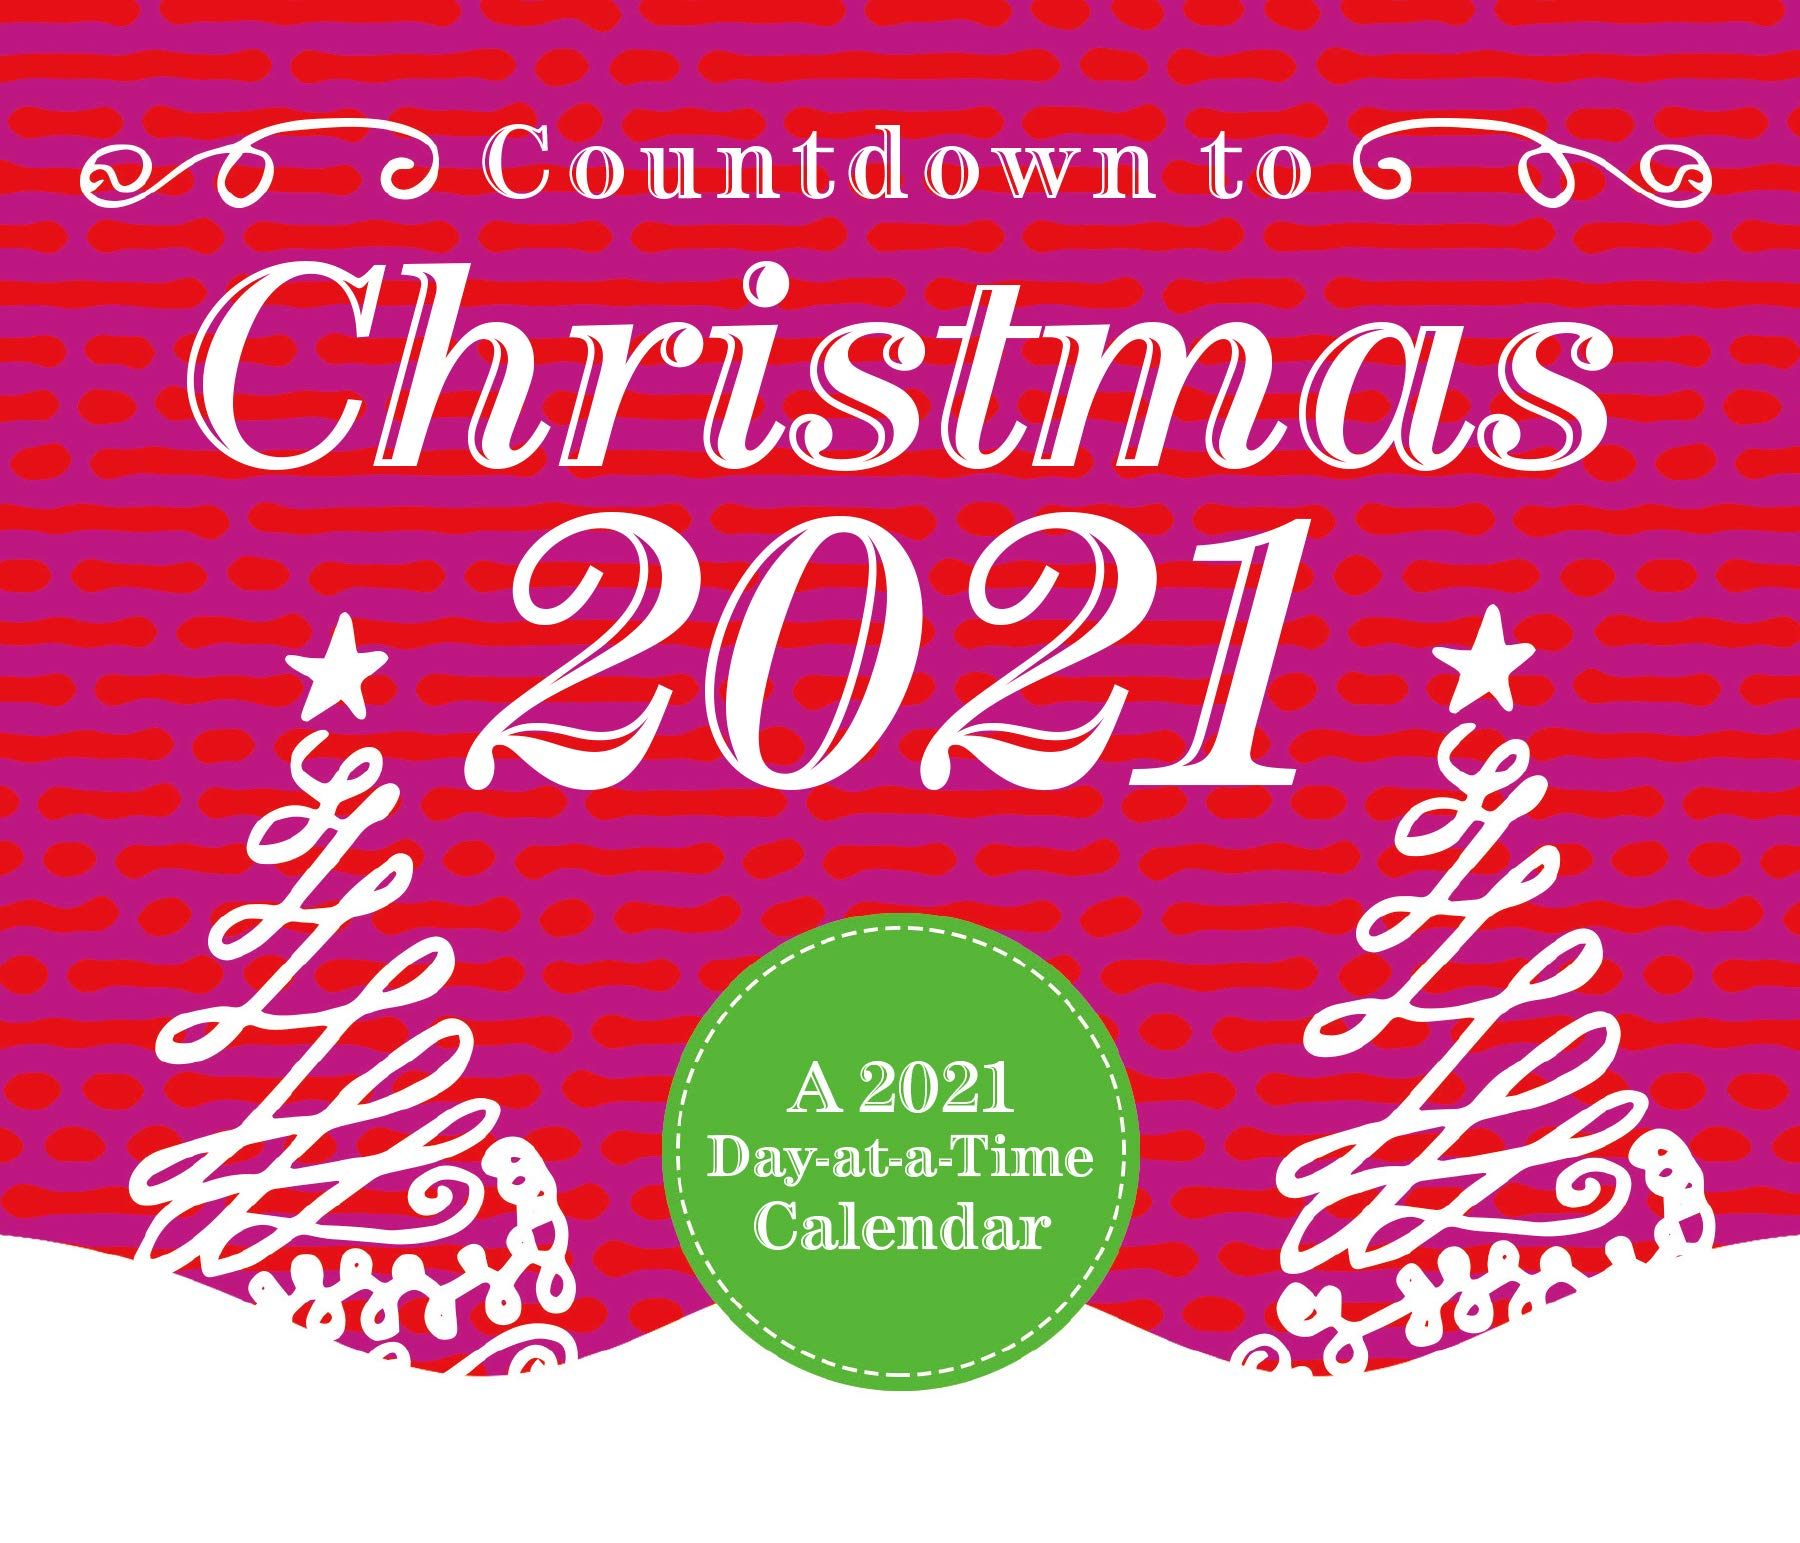 2021 Countdown To Christmas Countdown To Christmas 2021 Calendar Box Edition Bundle Deluxe 2021 Countdown To Christmas Day At A Time Box Calendar With Over 100 Calendar Stickers Xmas Gifts Office Supplies Buy Online At Best Price In